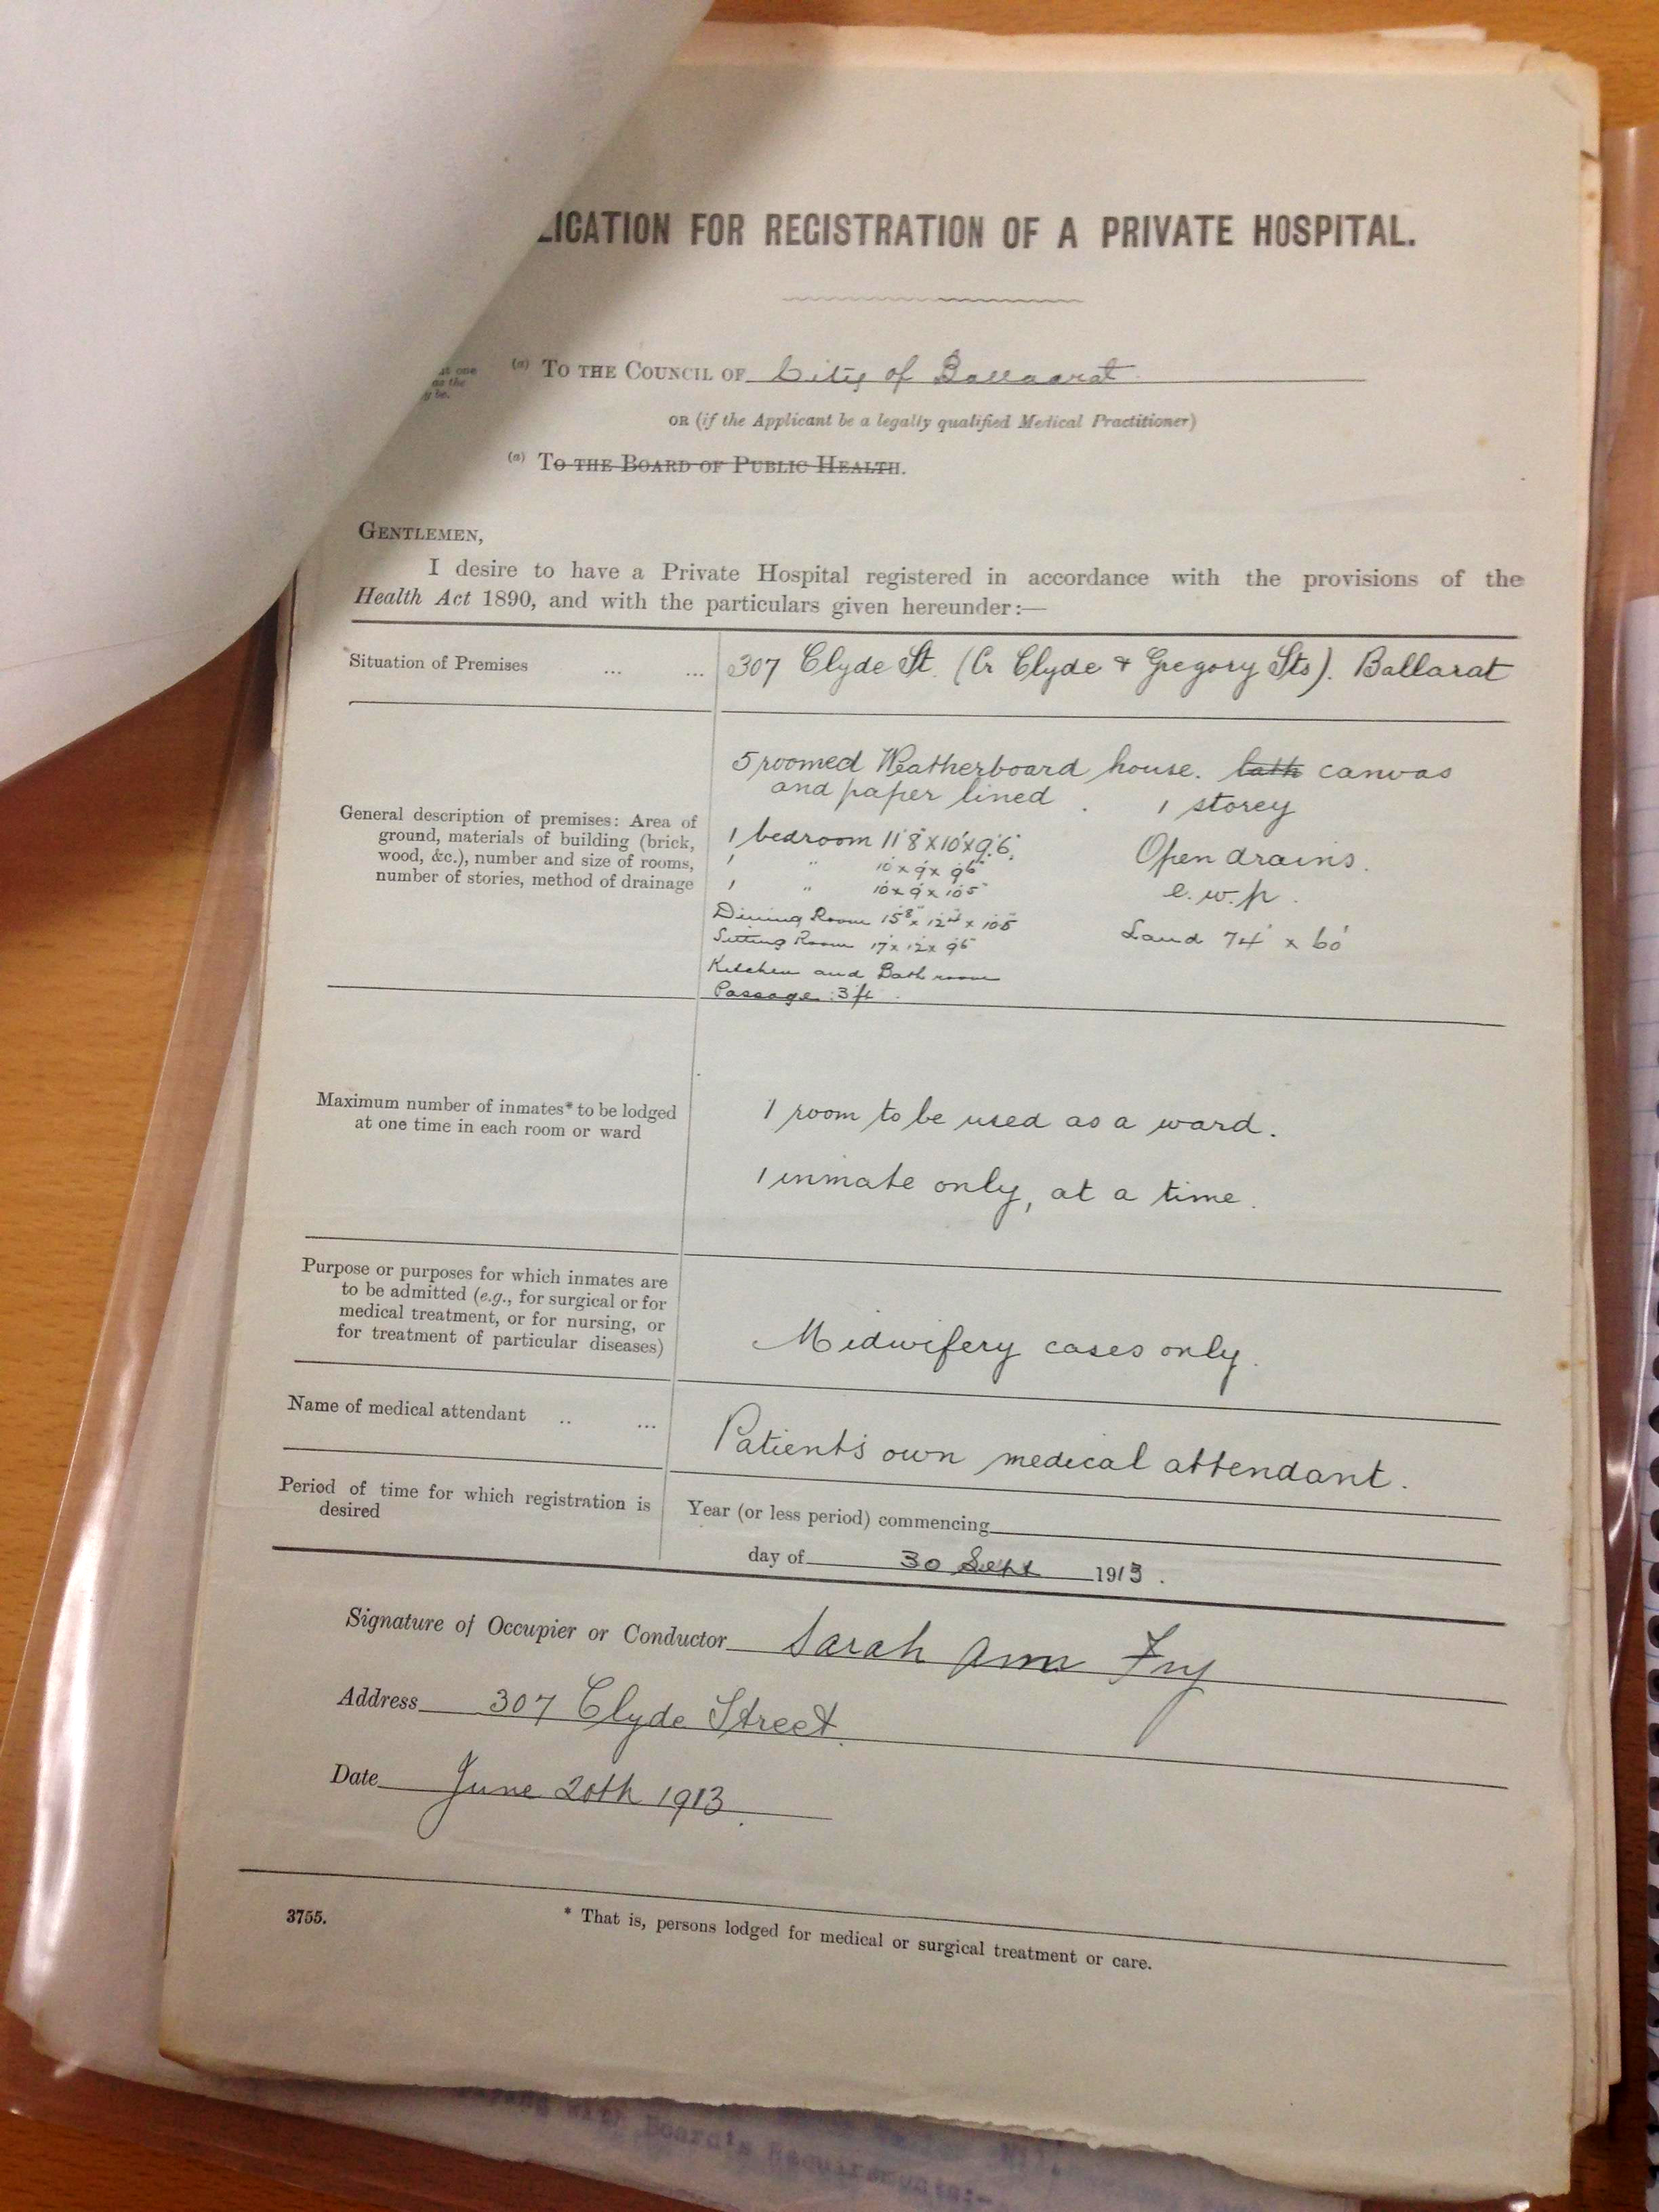 photo of one of the documents